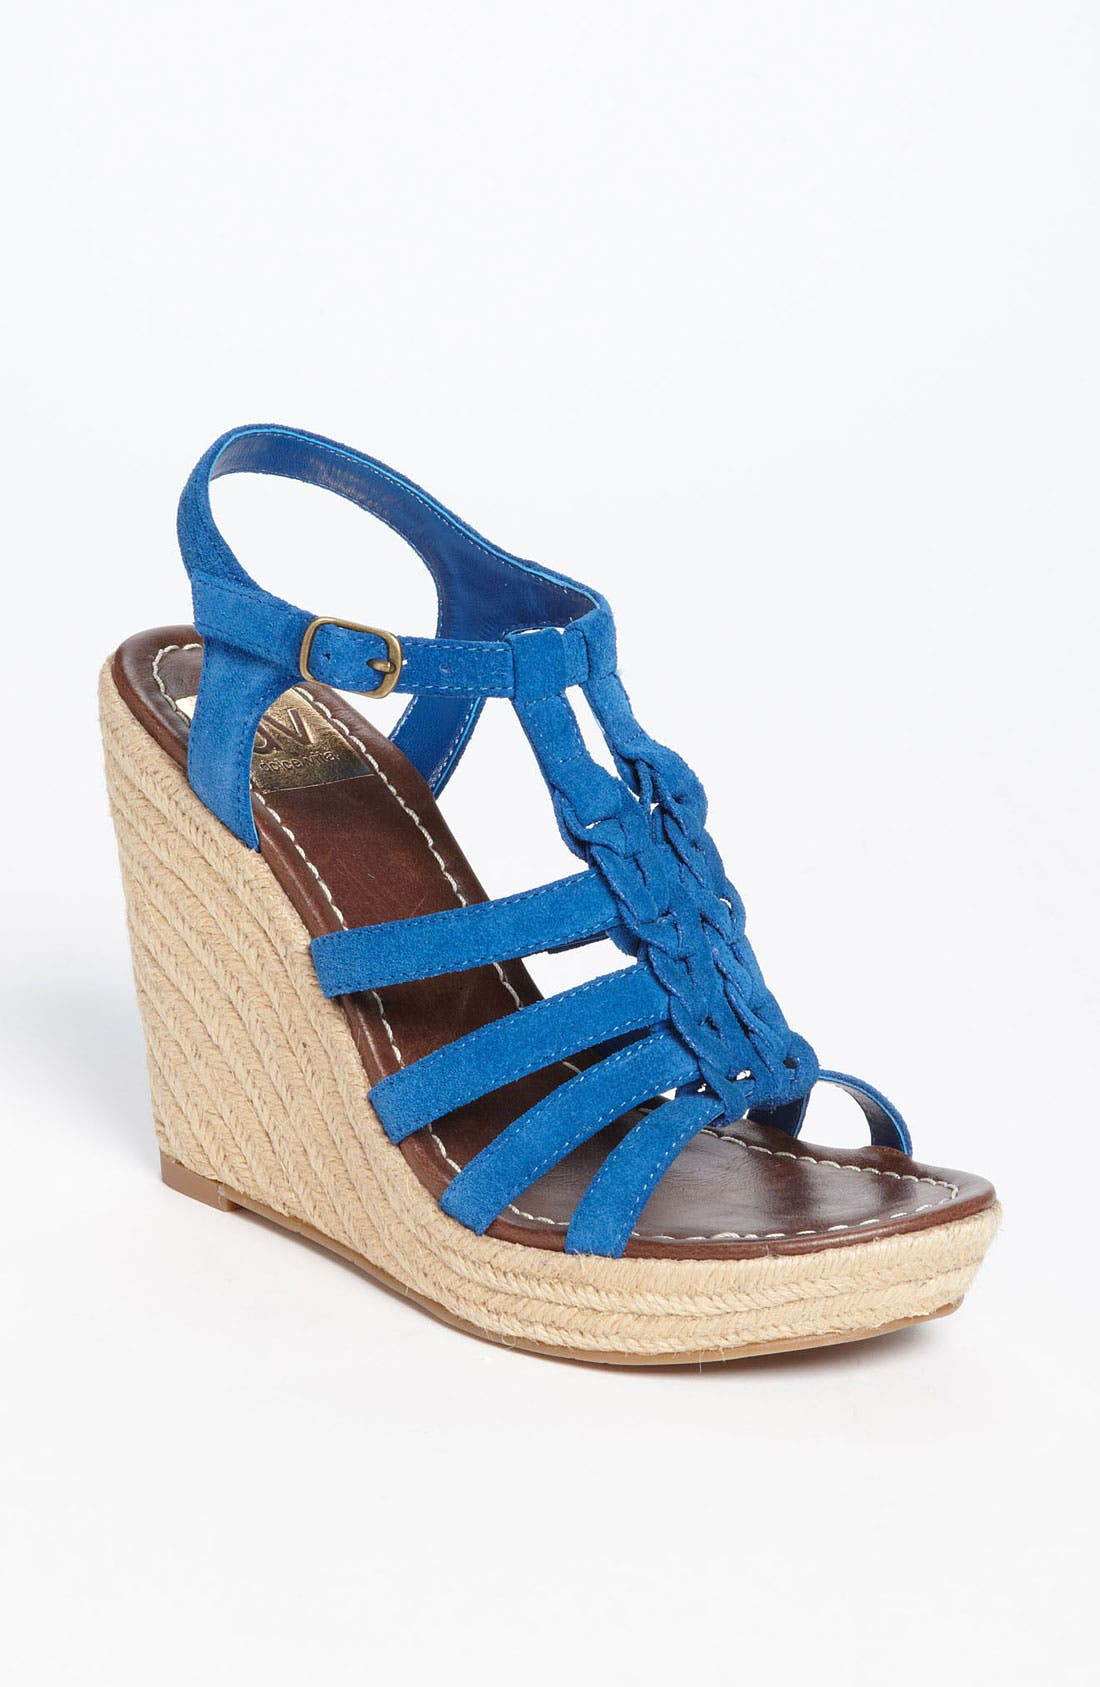 Main Image - DV by Dolce Vita 'Tarry' Sandal (Nordstrom Exclusive)